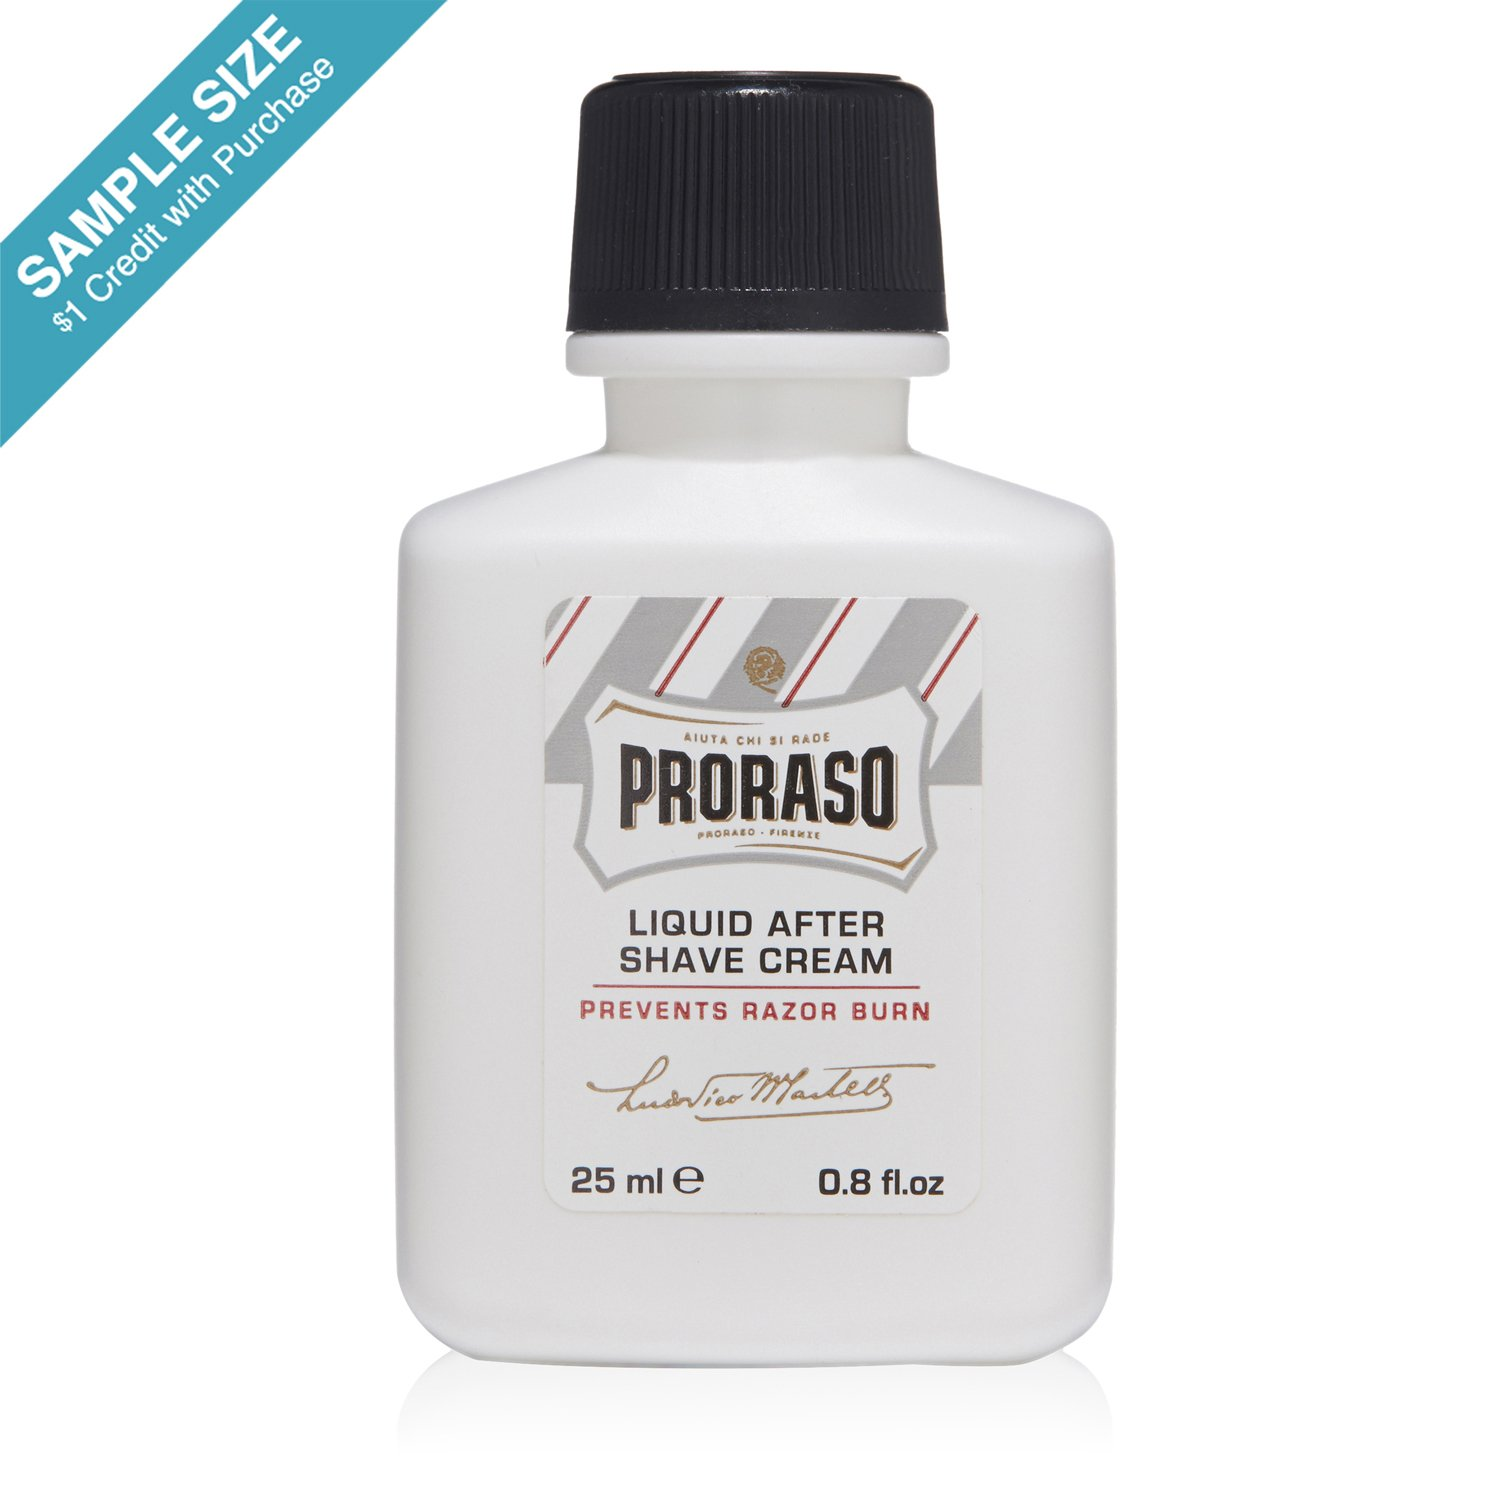 SAMPLE Proraso After Shave Balm Sensitive 0.8 fl oz ($1 Credit with Purchase)